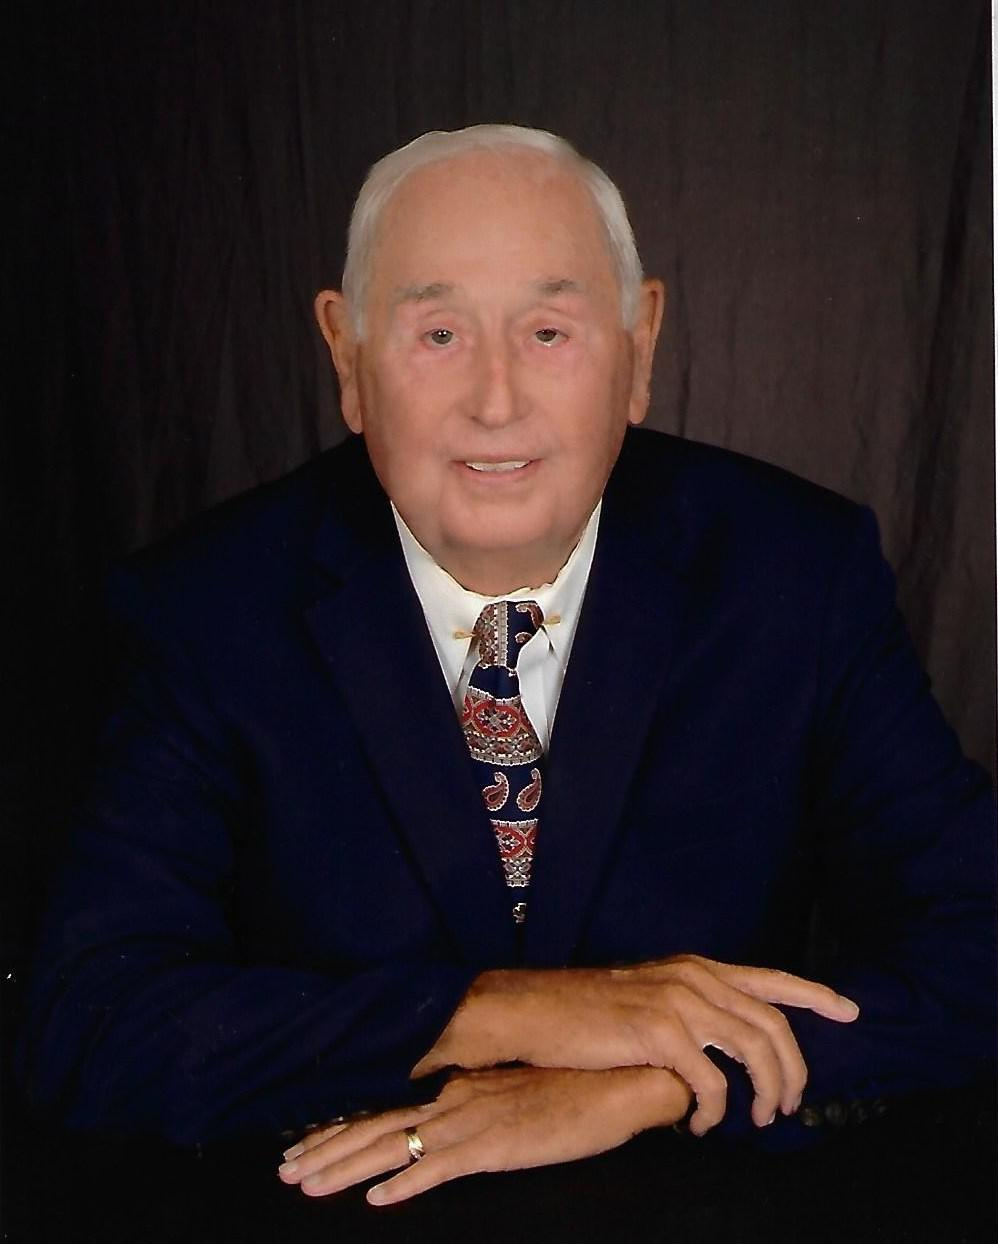 Frederick H. Fred Paynter